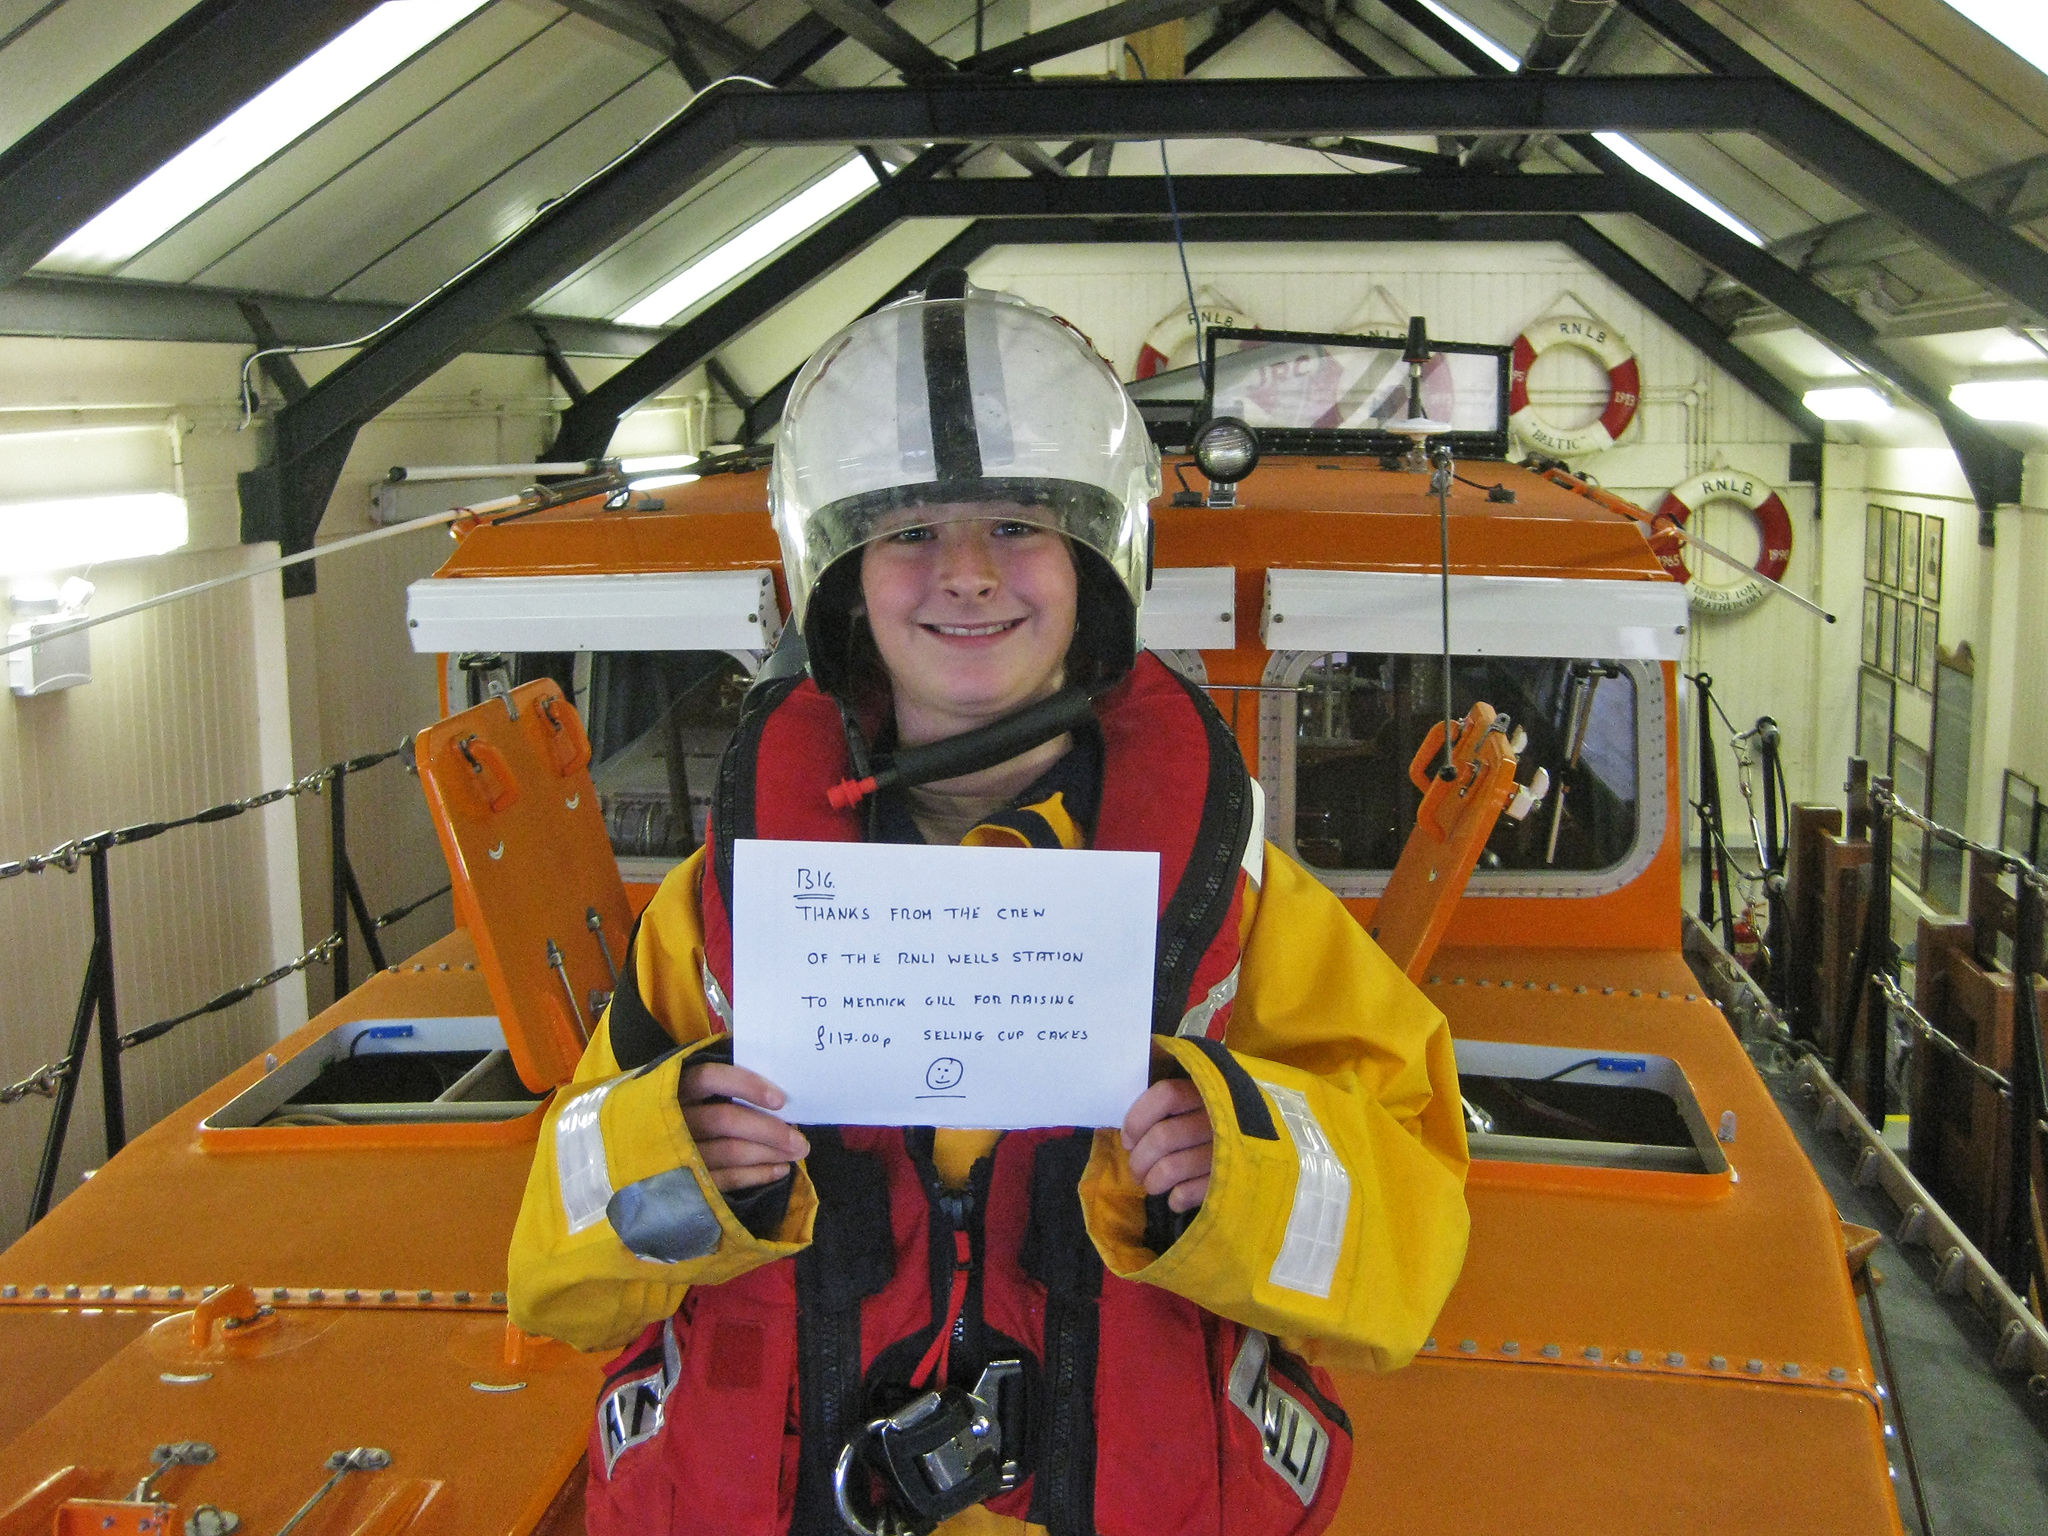 Merrick Gill on our all-weather lifeboat